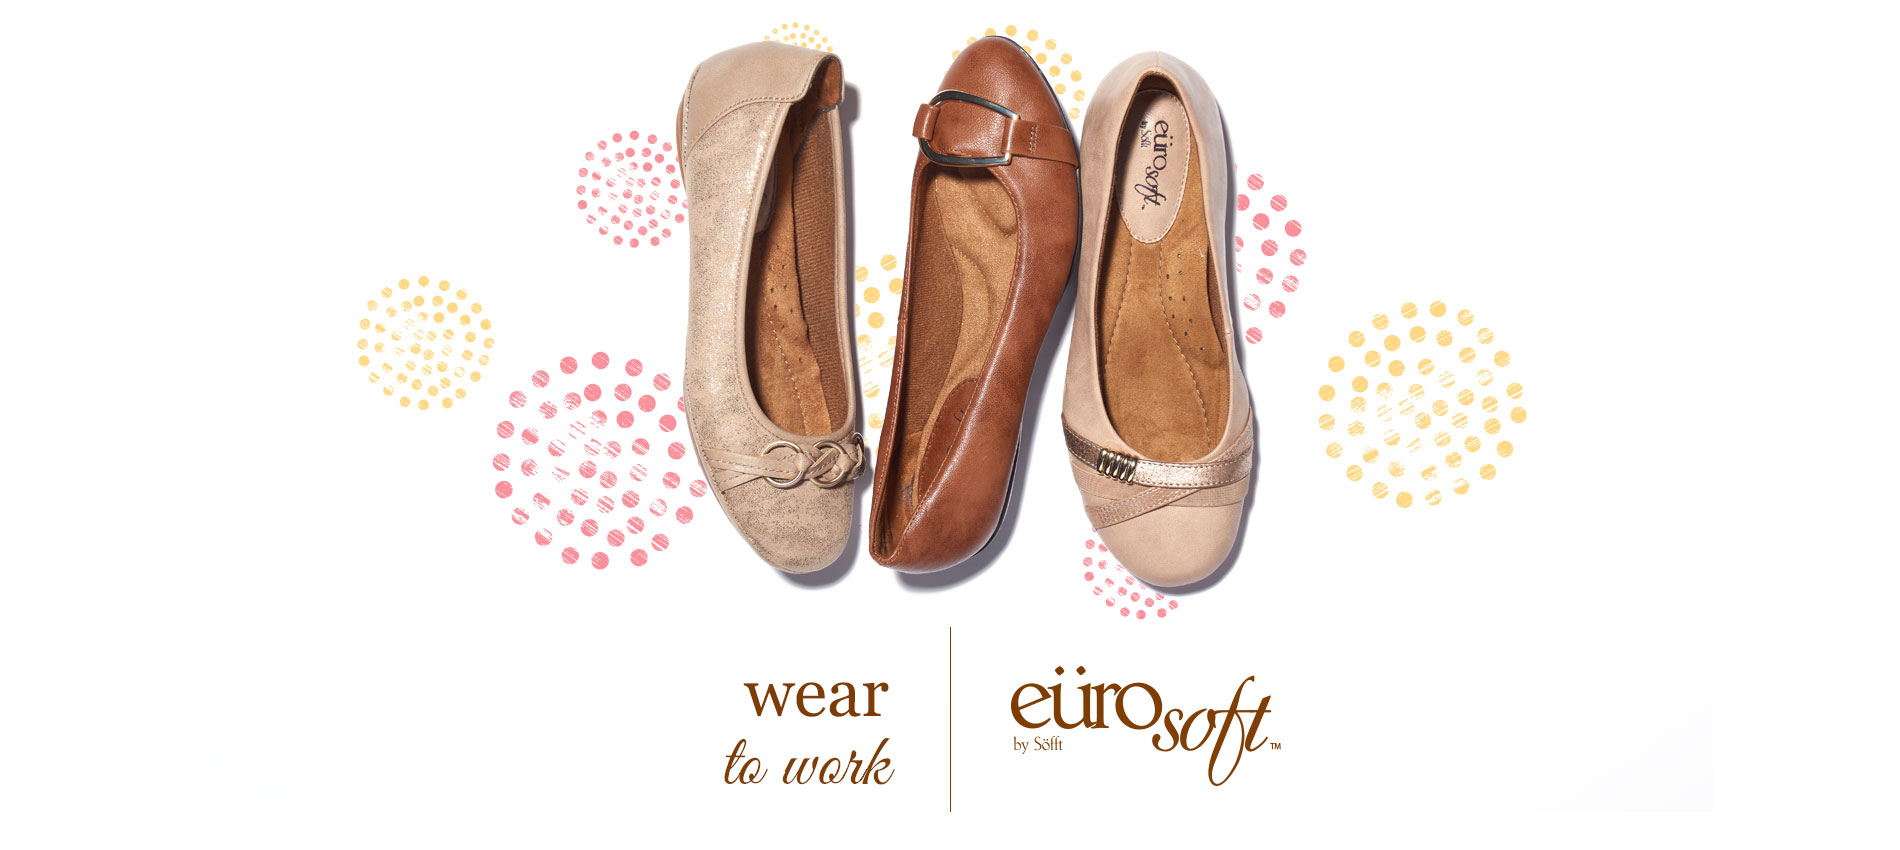 Wear to Work. Eurosoft by Sofft. Shop All Styles